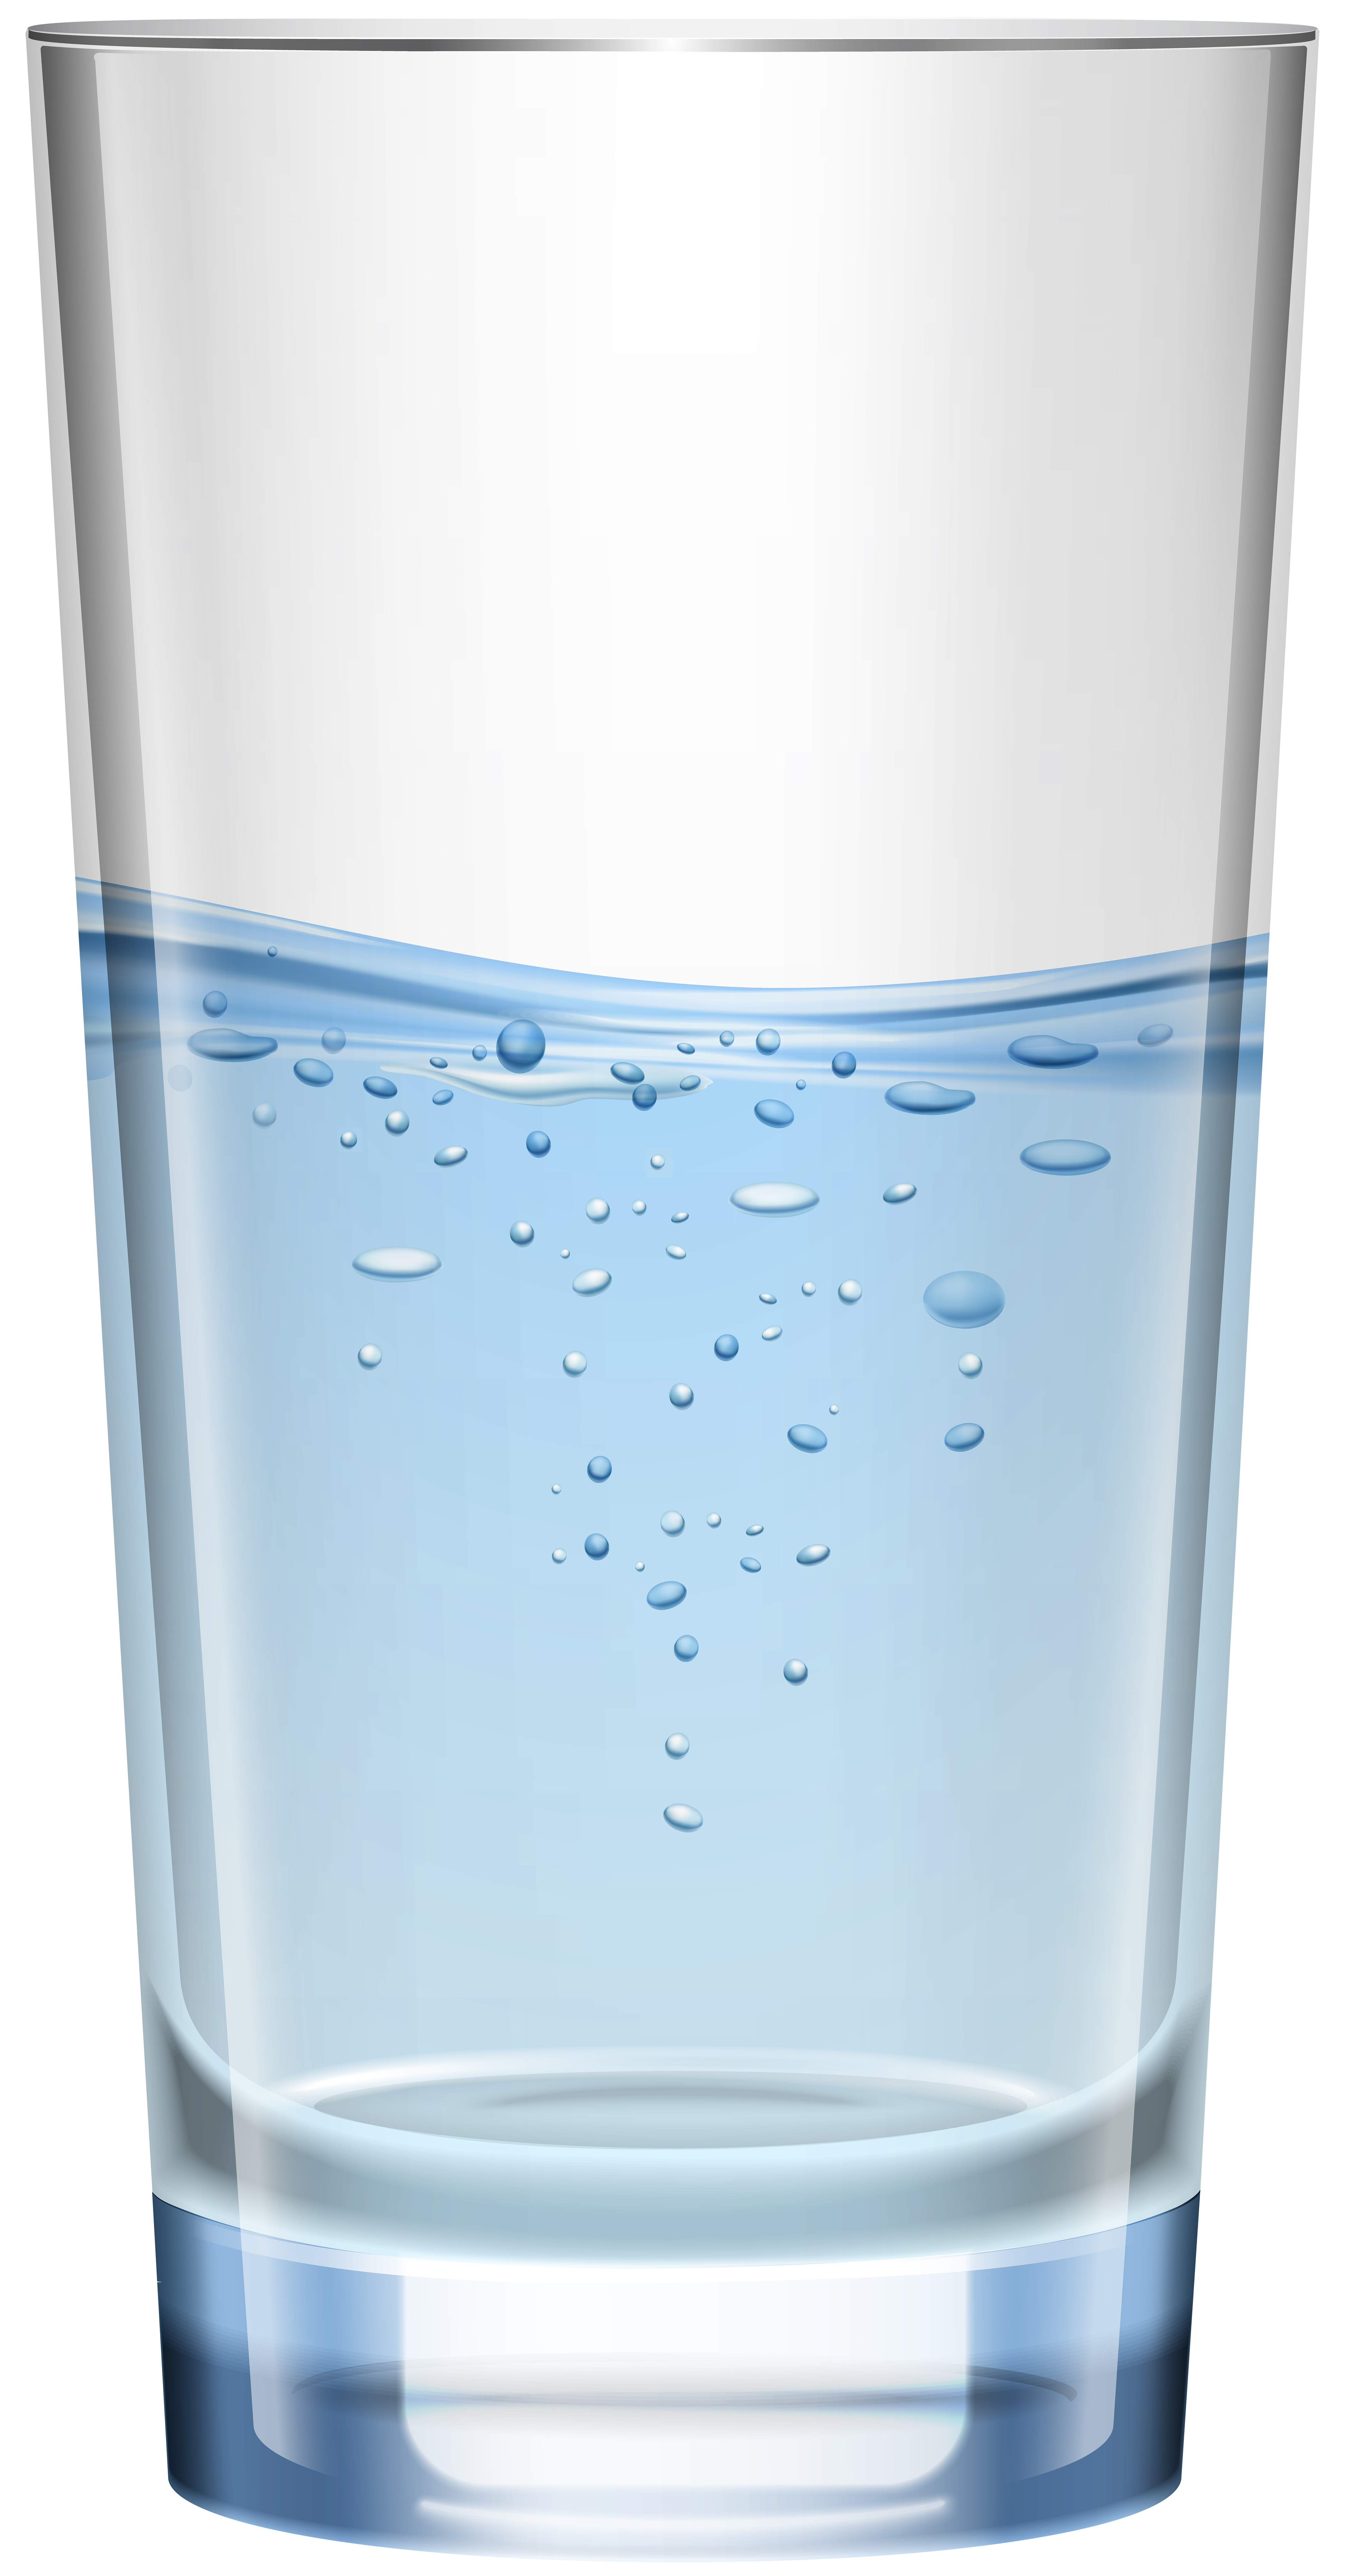 Cup Scalable Vector Graphics Icon.